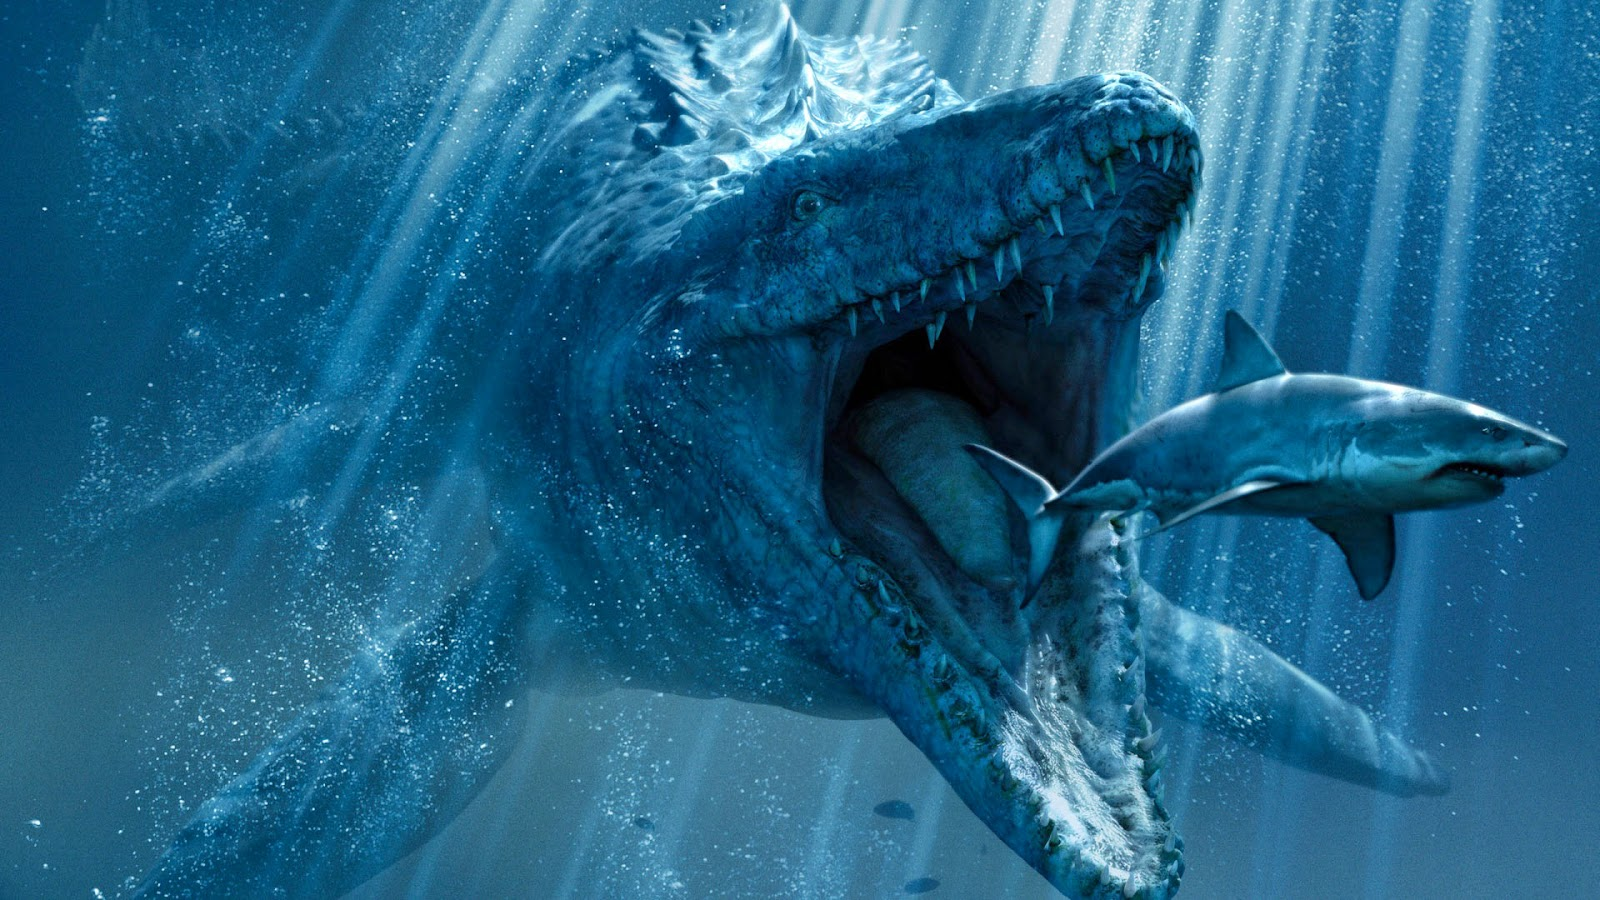 Papel de Parede Filme Jurassic World para pc hd 3d grátis movie wallpaper hd image free